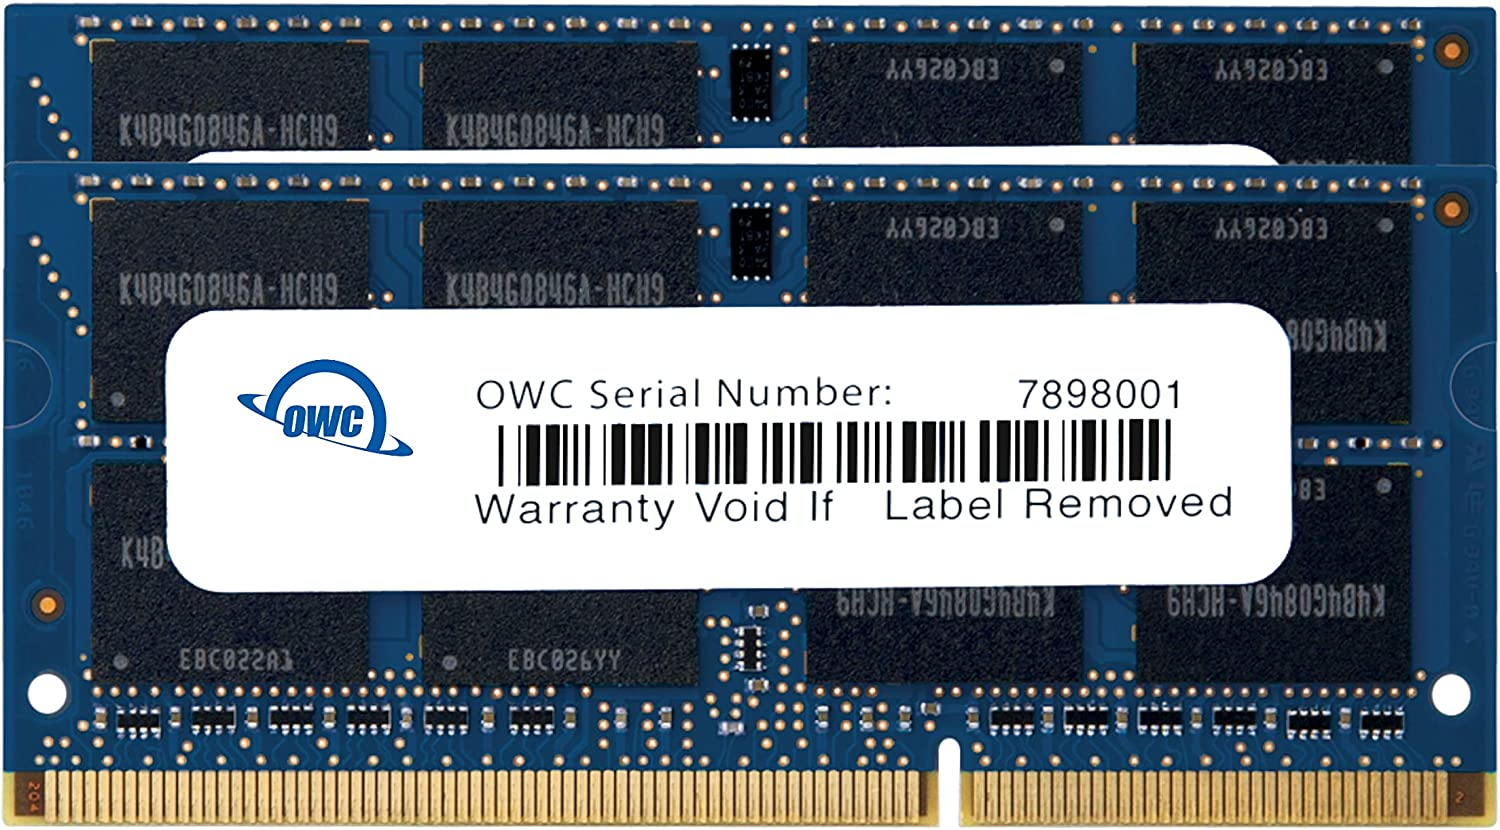 OWC 16GB (2x8GB) PC3-12800 DDR3L 1600MHz SO-DIMM 204 Pin CL11 Memory Upgrade Kit for iMac, Mac Mini, and MacBook Pro, (OWC1600DDR3S16P)